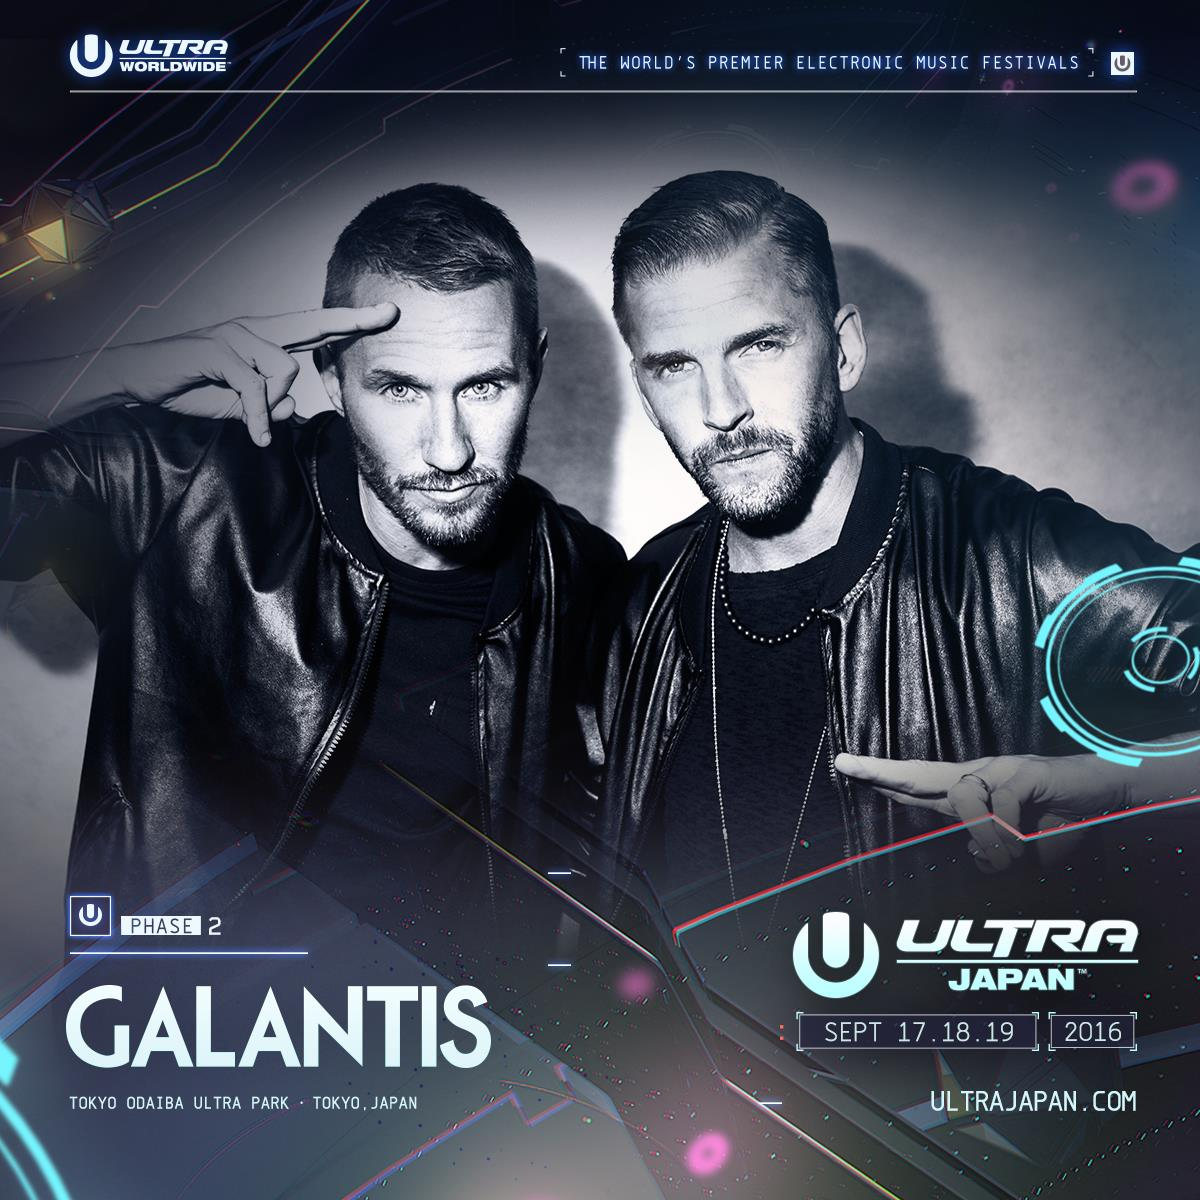 ULTRA JAPAN 2016 Galantis